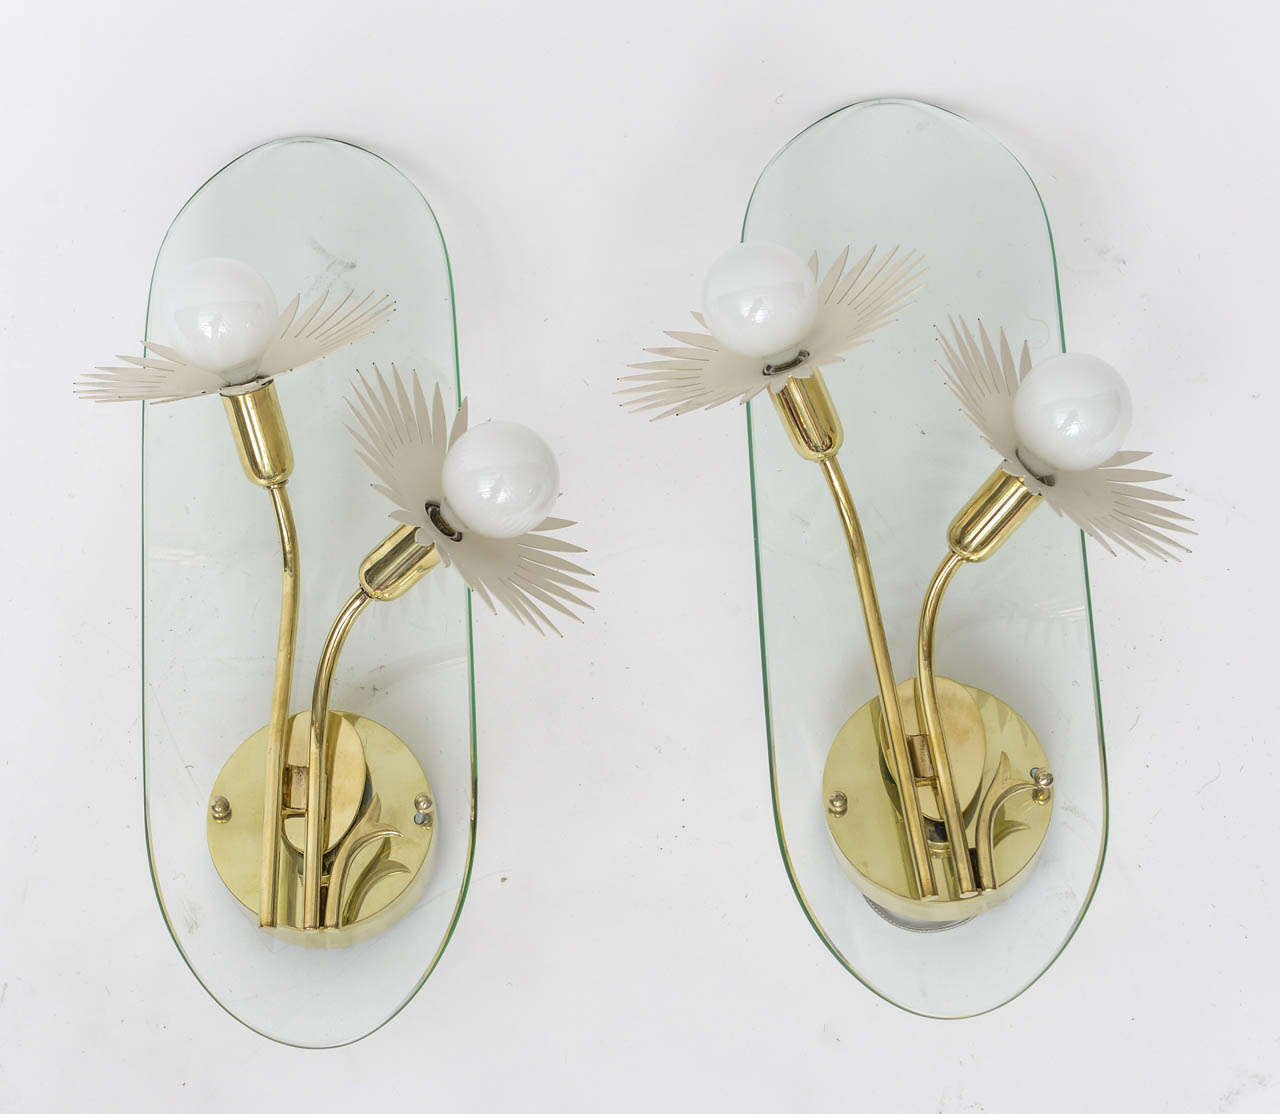 1950s Italian brass and glass wall sconces in the manner of Pietro Chiesa for Fontana Arte, with whimsical white enameled flower sockets. Professionally polished and re-wired.